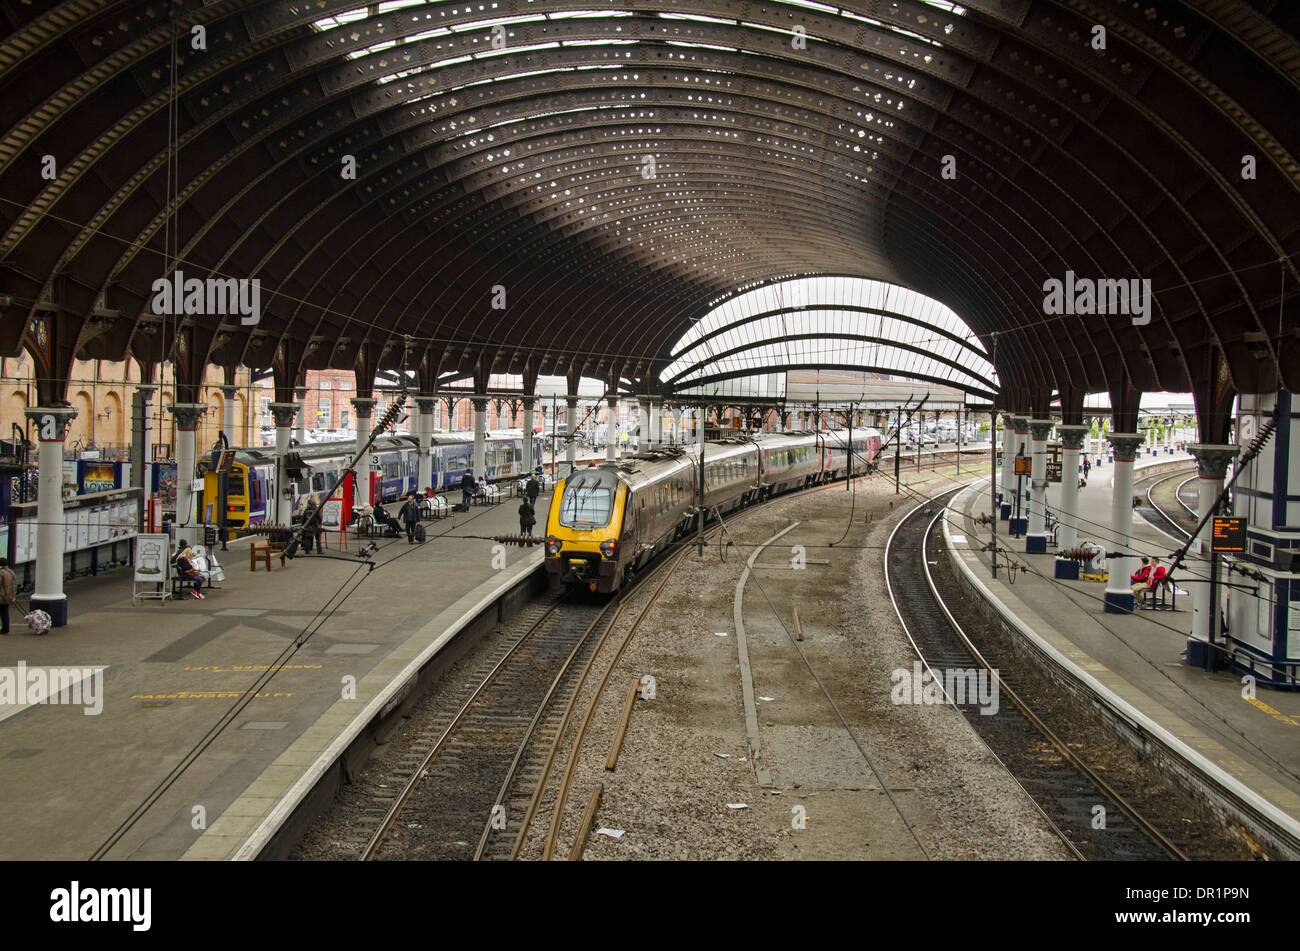 Interior view of trainshed with iron & glass roof, stationary trains & people waiting on platfom - York Railway Station, North Yorkshire, England, UK. - Stock Image